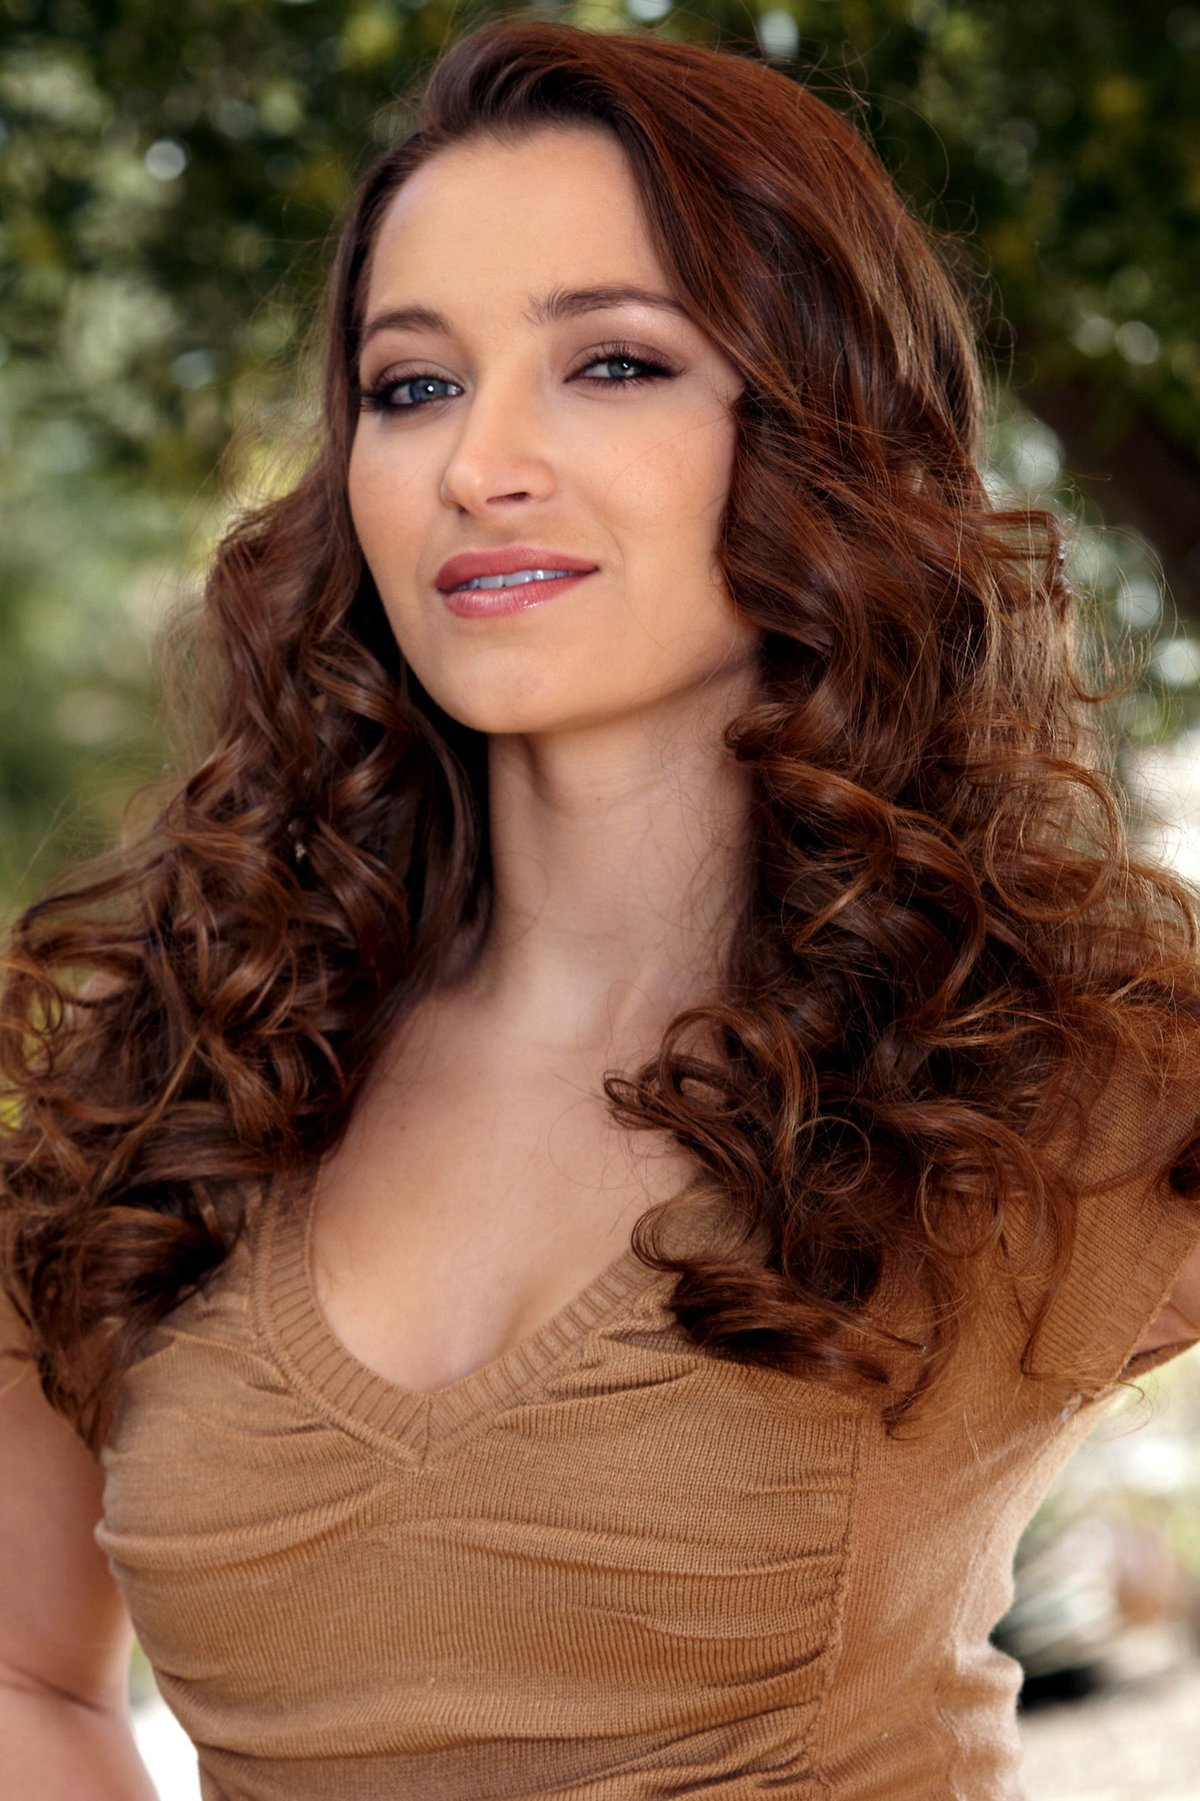 Dani Daniels HD Wallpapers card from user Serj Y in Yandex 1200x1801